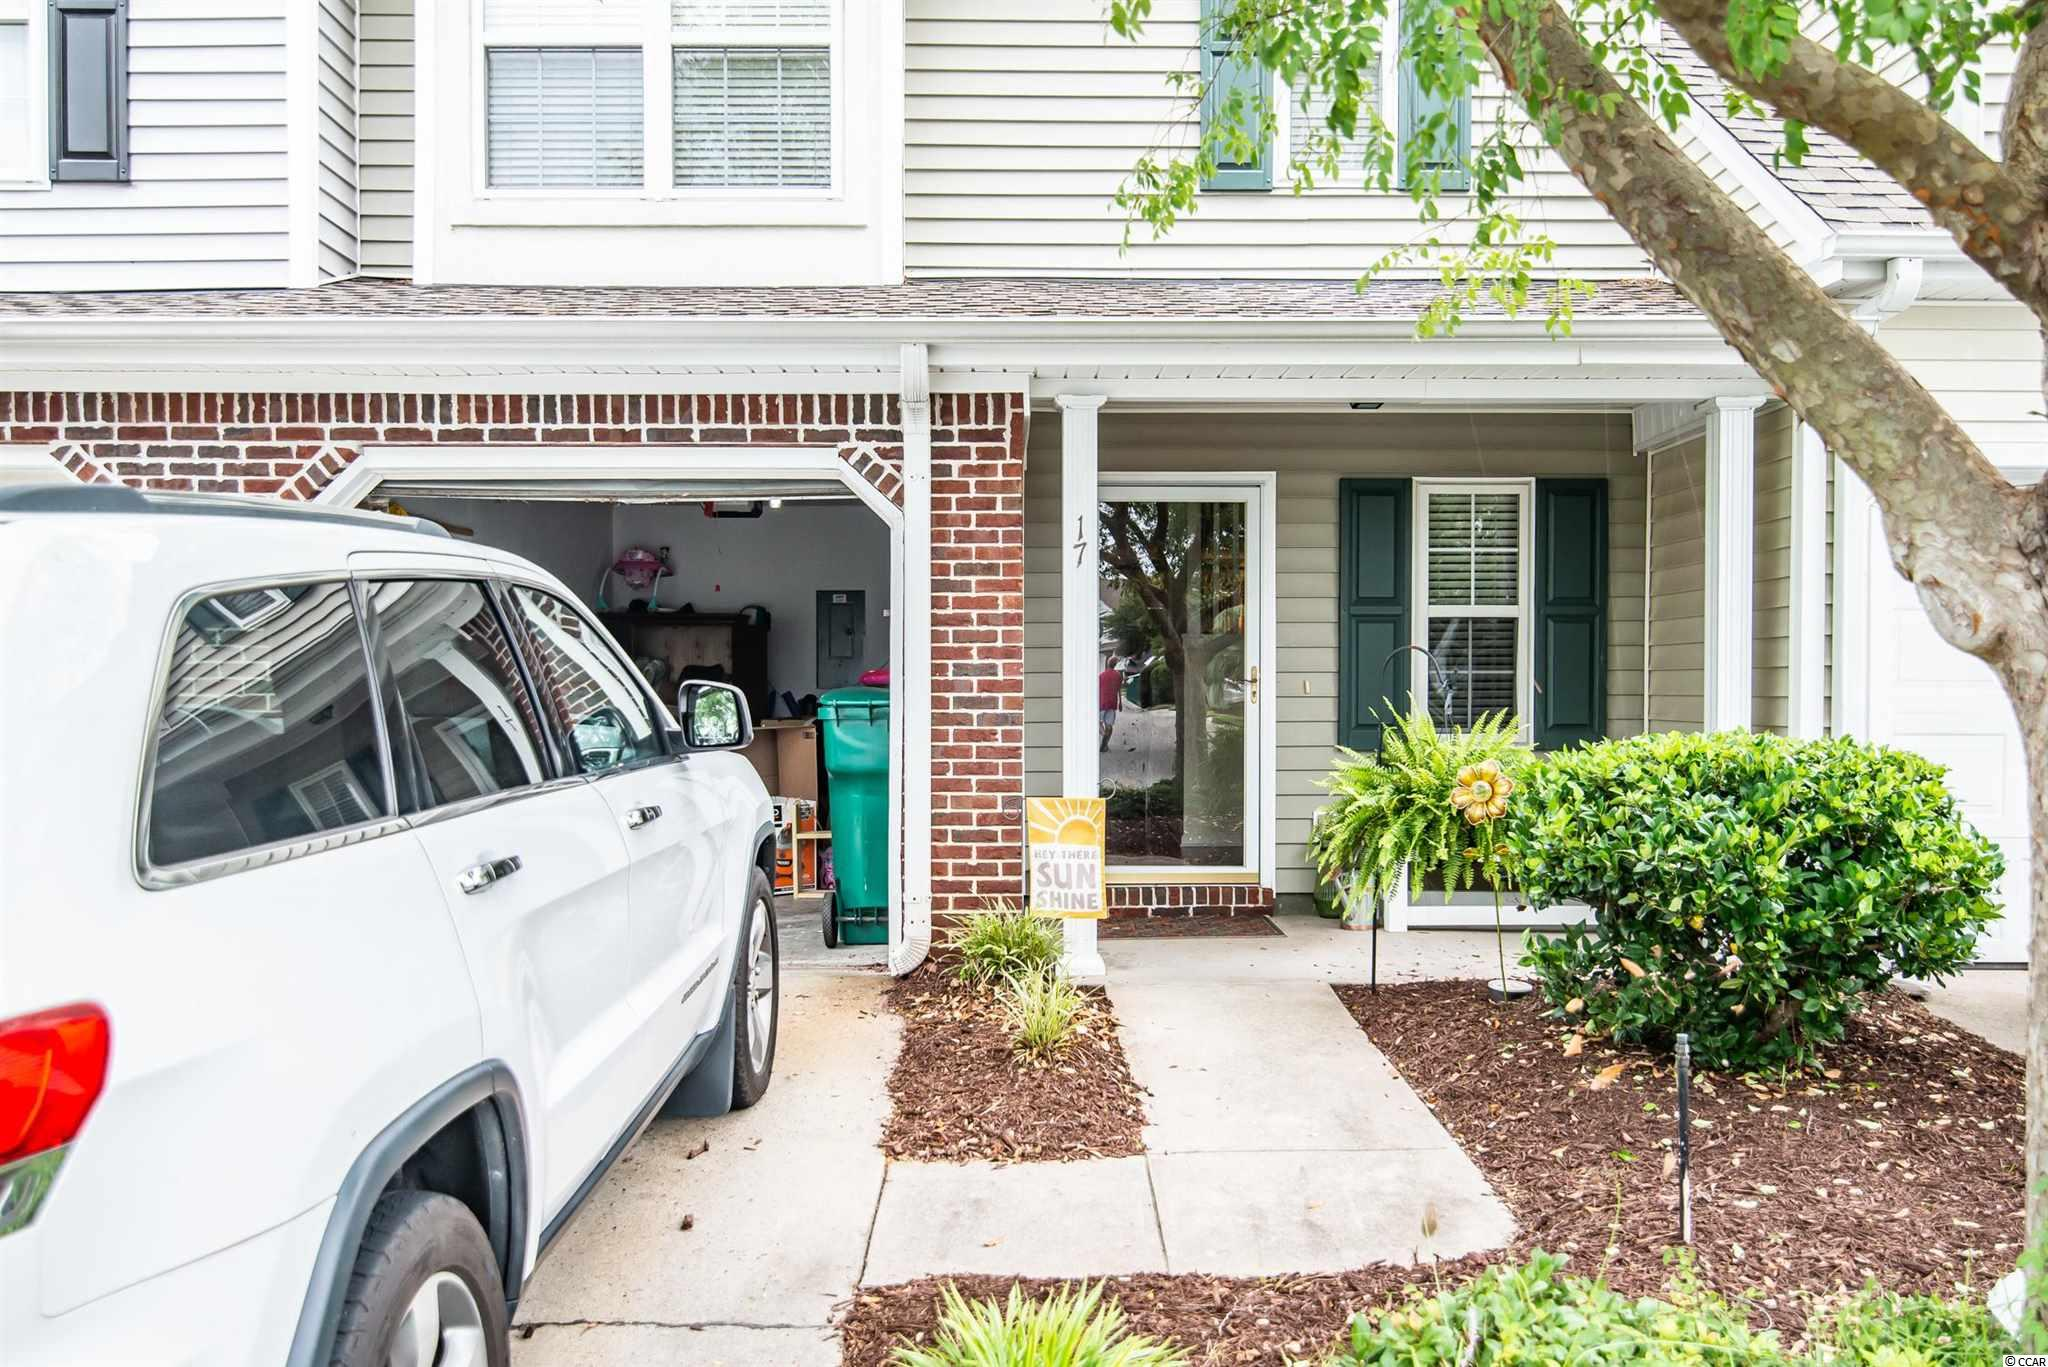 Two bedroom/2.5 bath townhouse located in Pawleys Place.  This unit features great location in the heart of Pawleys Island in a quiet community that features pool and lovely pond.  One car garage as well as screen in back porch and small front porch. This unit is being sold unfurnished.